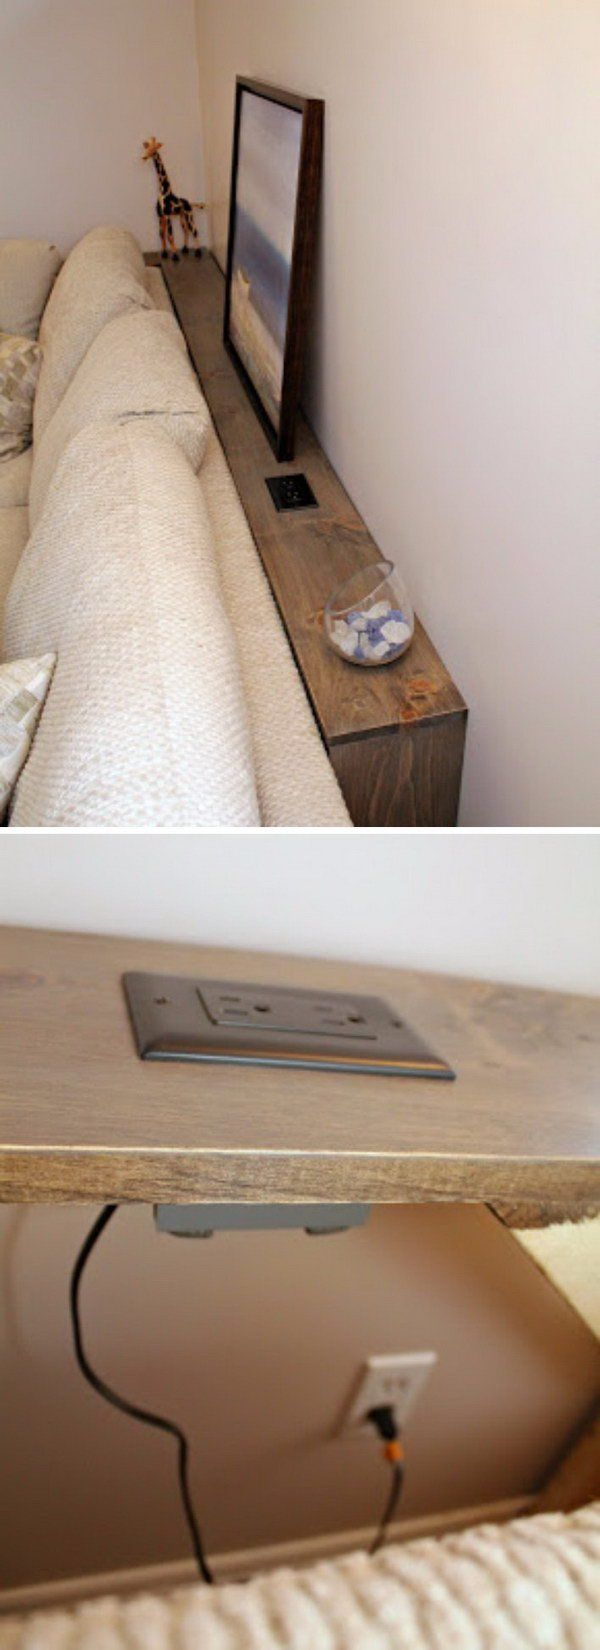 Diy overbed table - 20 Great Ways To Make Use Of The Space Behind Couch For Extra Storage And Visual Depth